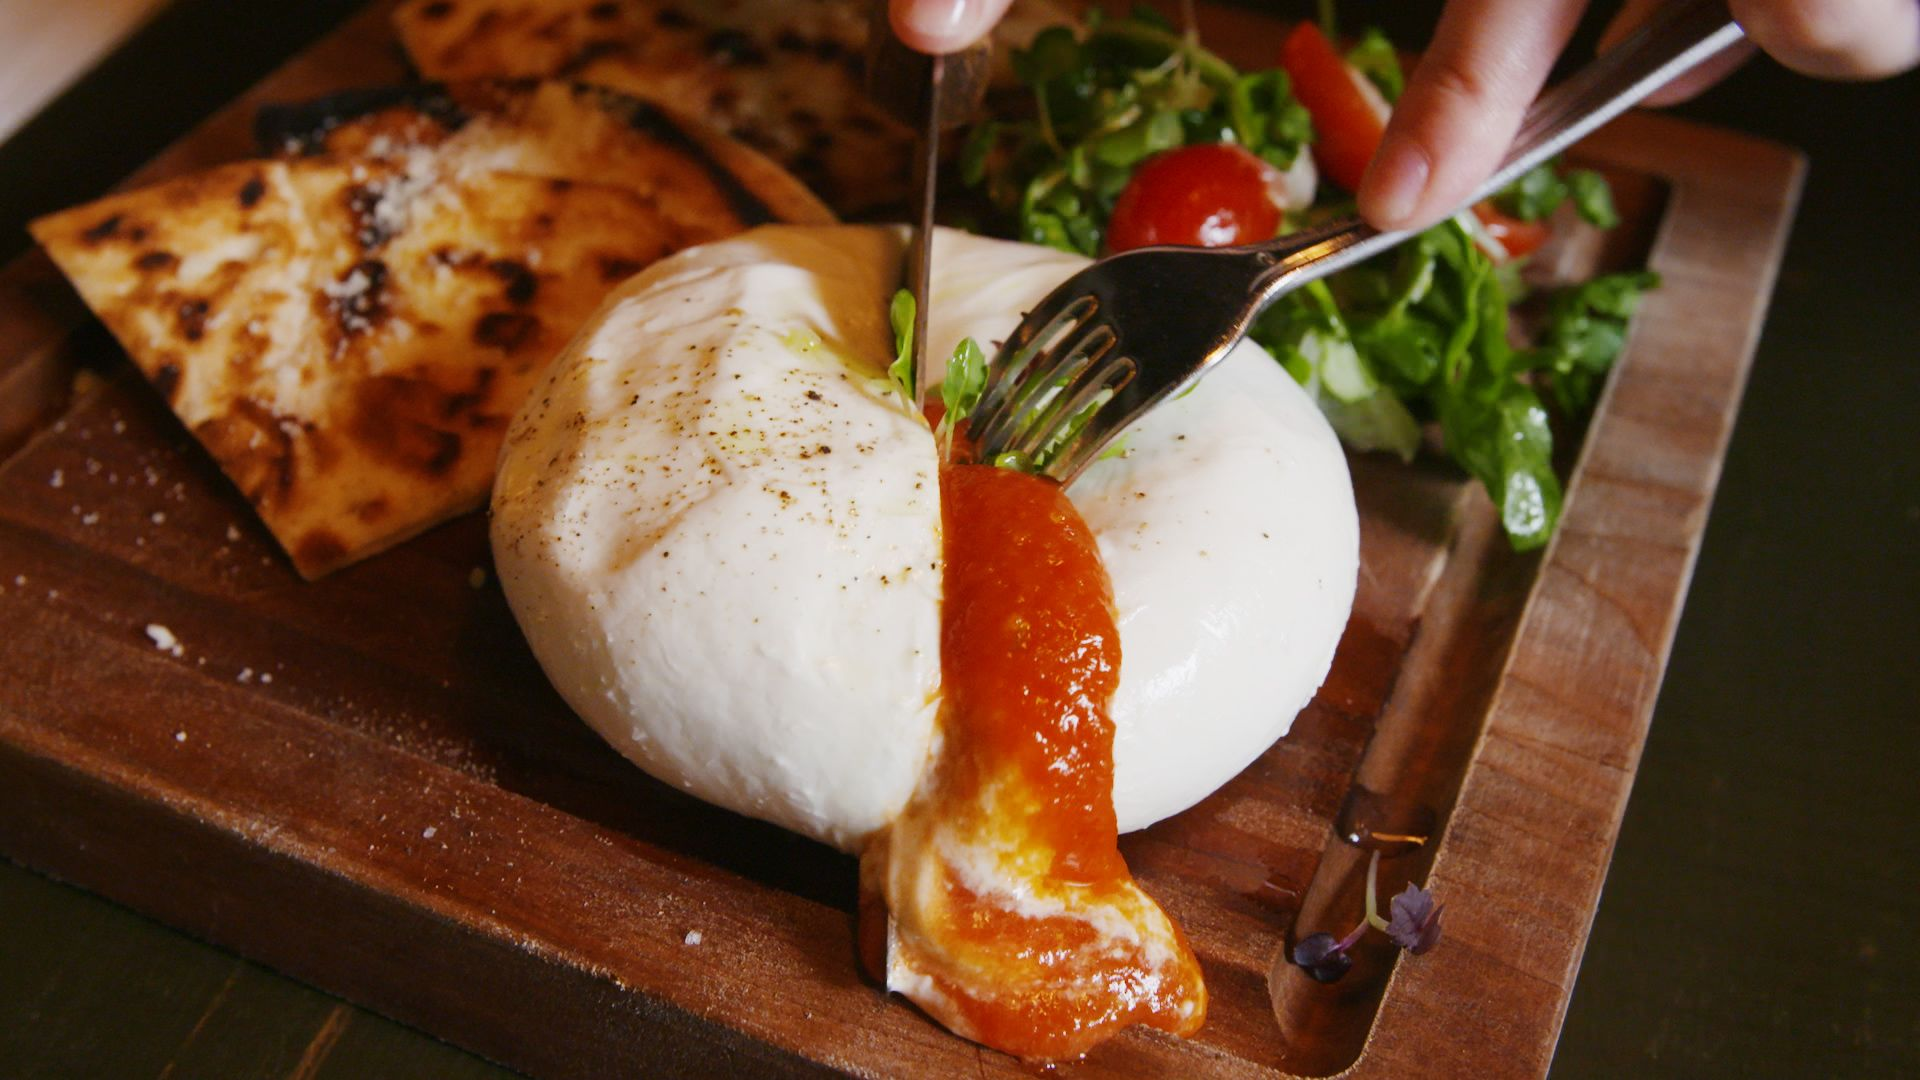 This Burrata Is Stuffed With Pizza Sauce And Even More Cheese